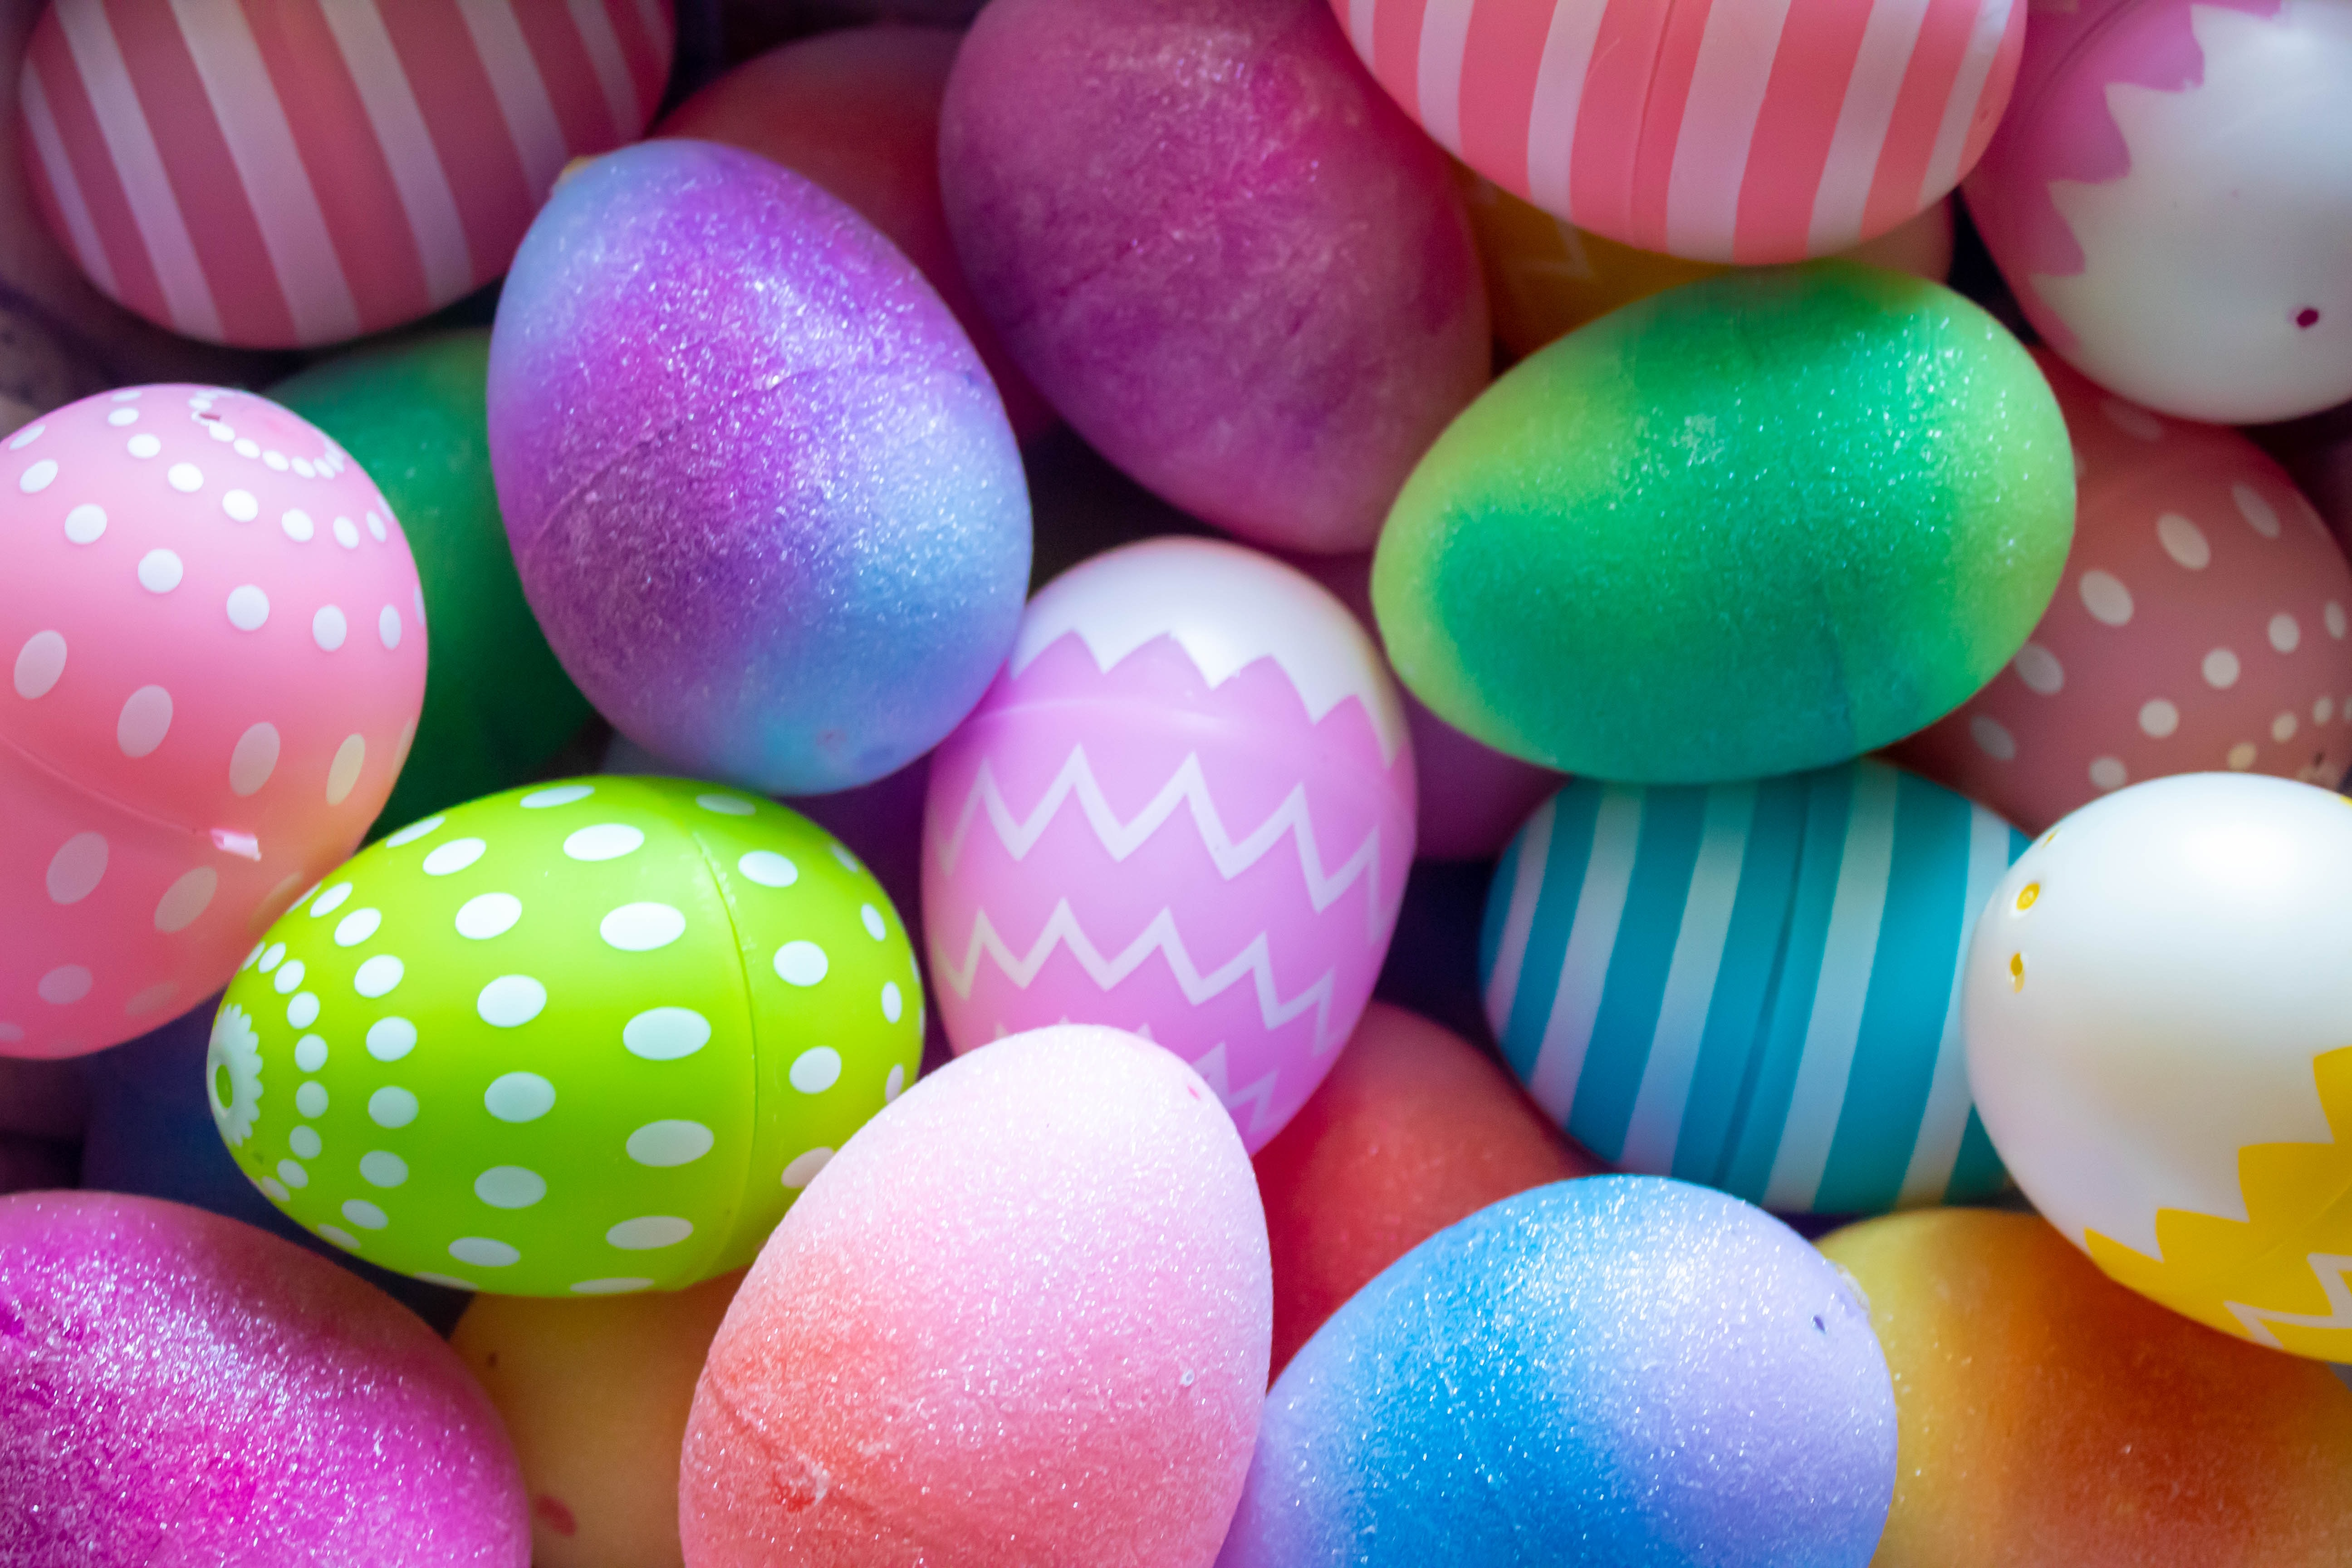 5 Fun and Festive Ways to Celebrate Easter at Home